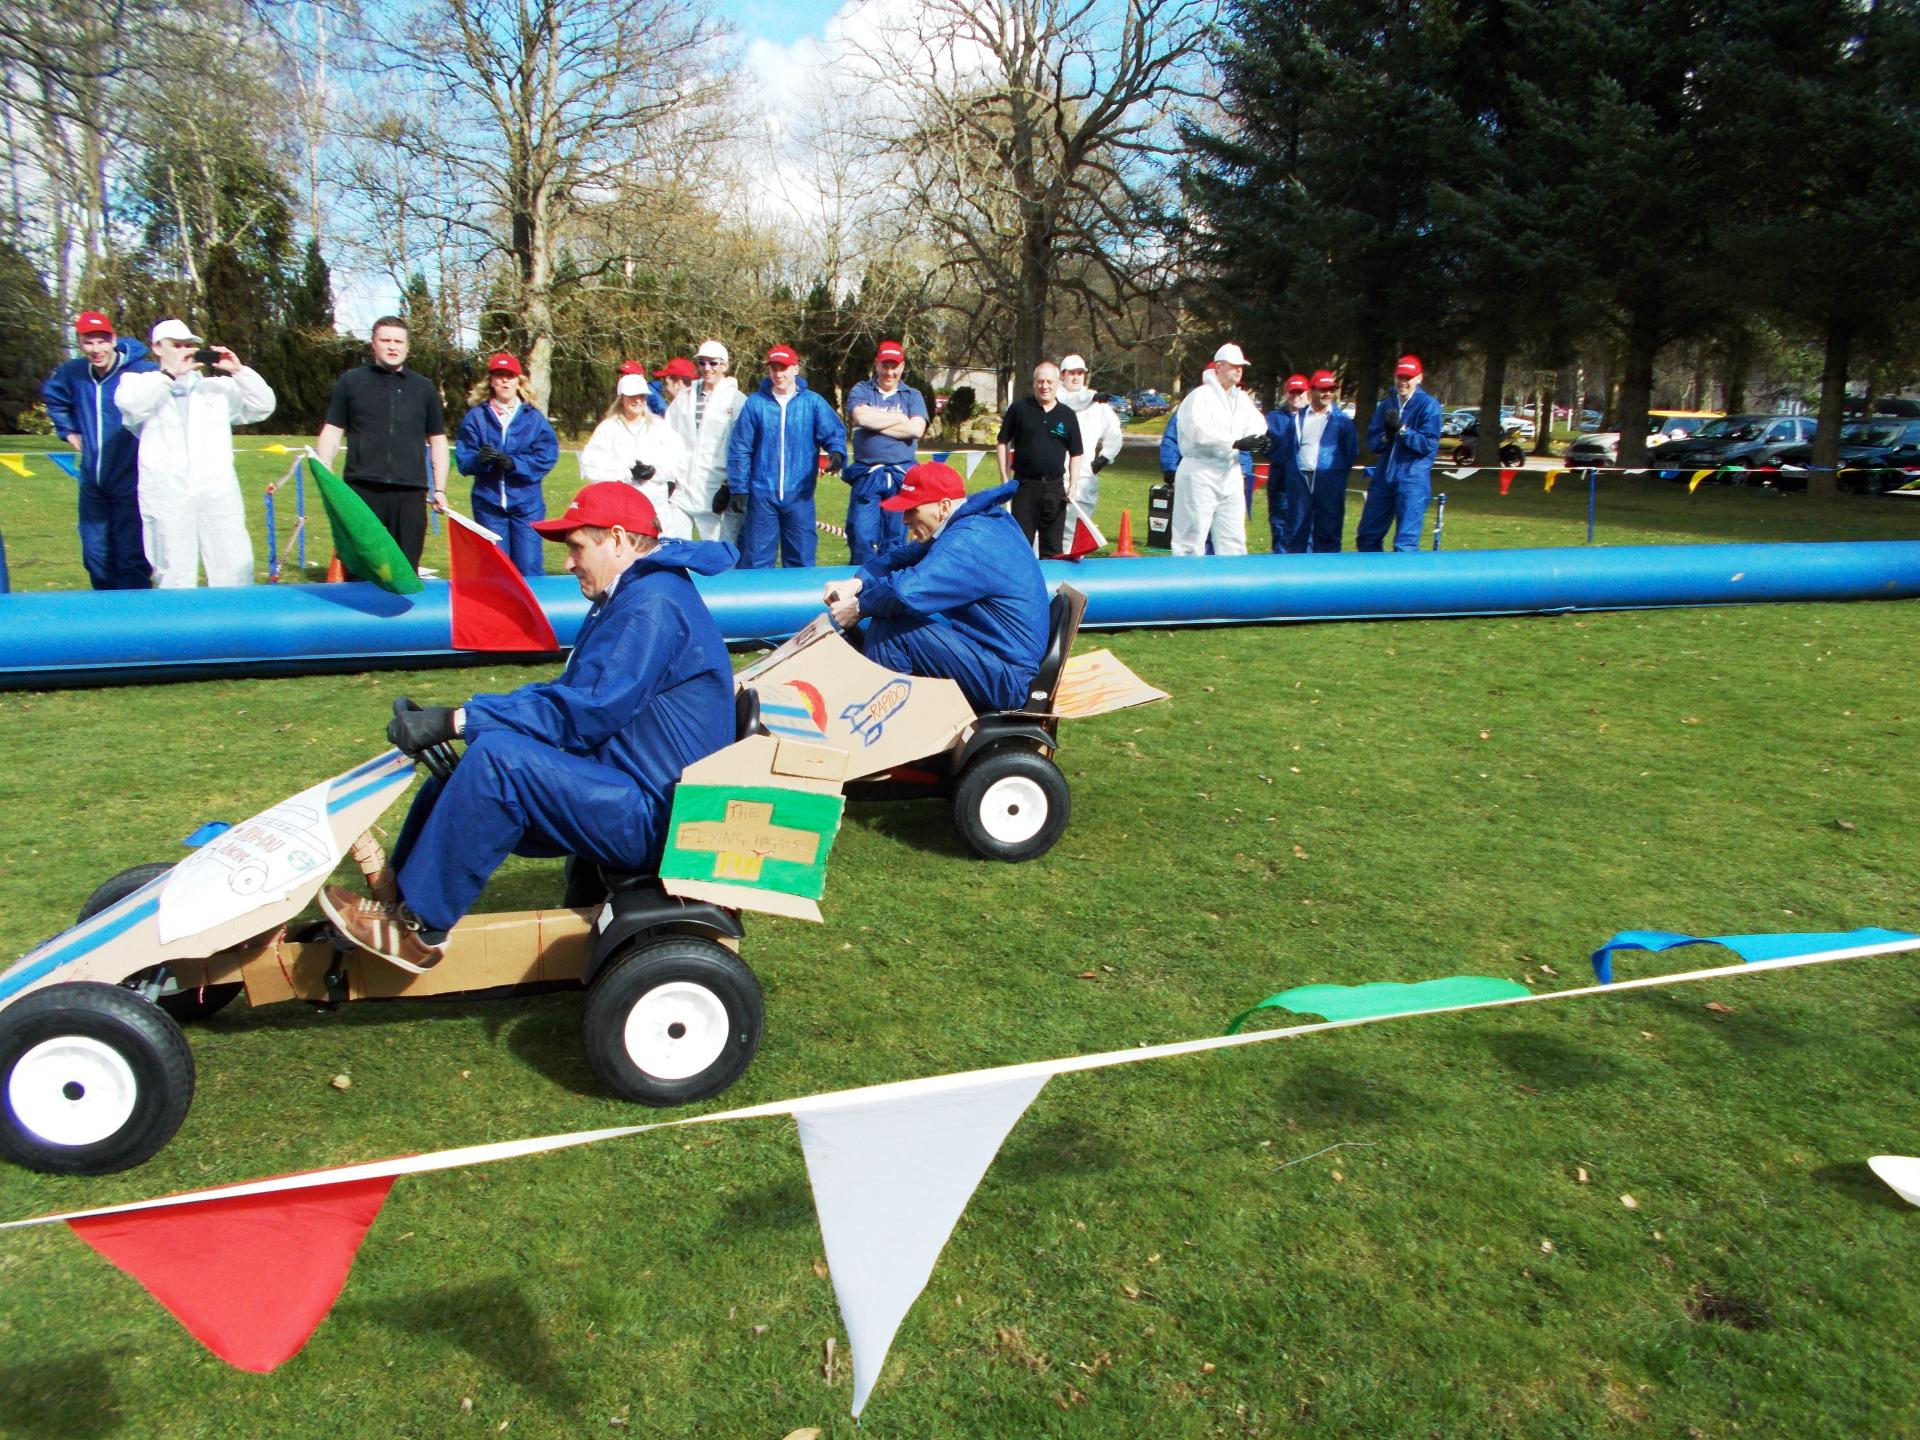 S1 Soapbox Derby Team Building with Subsea7